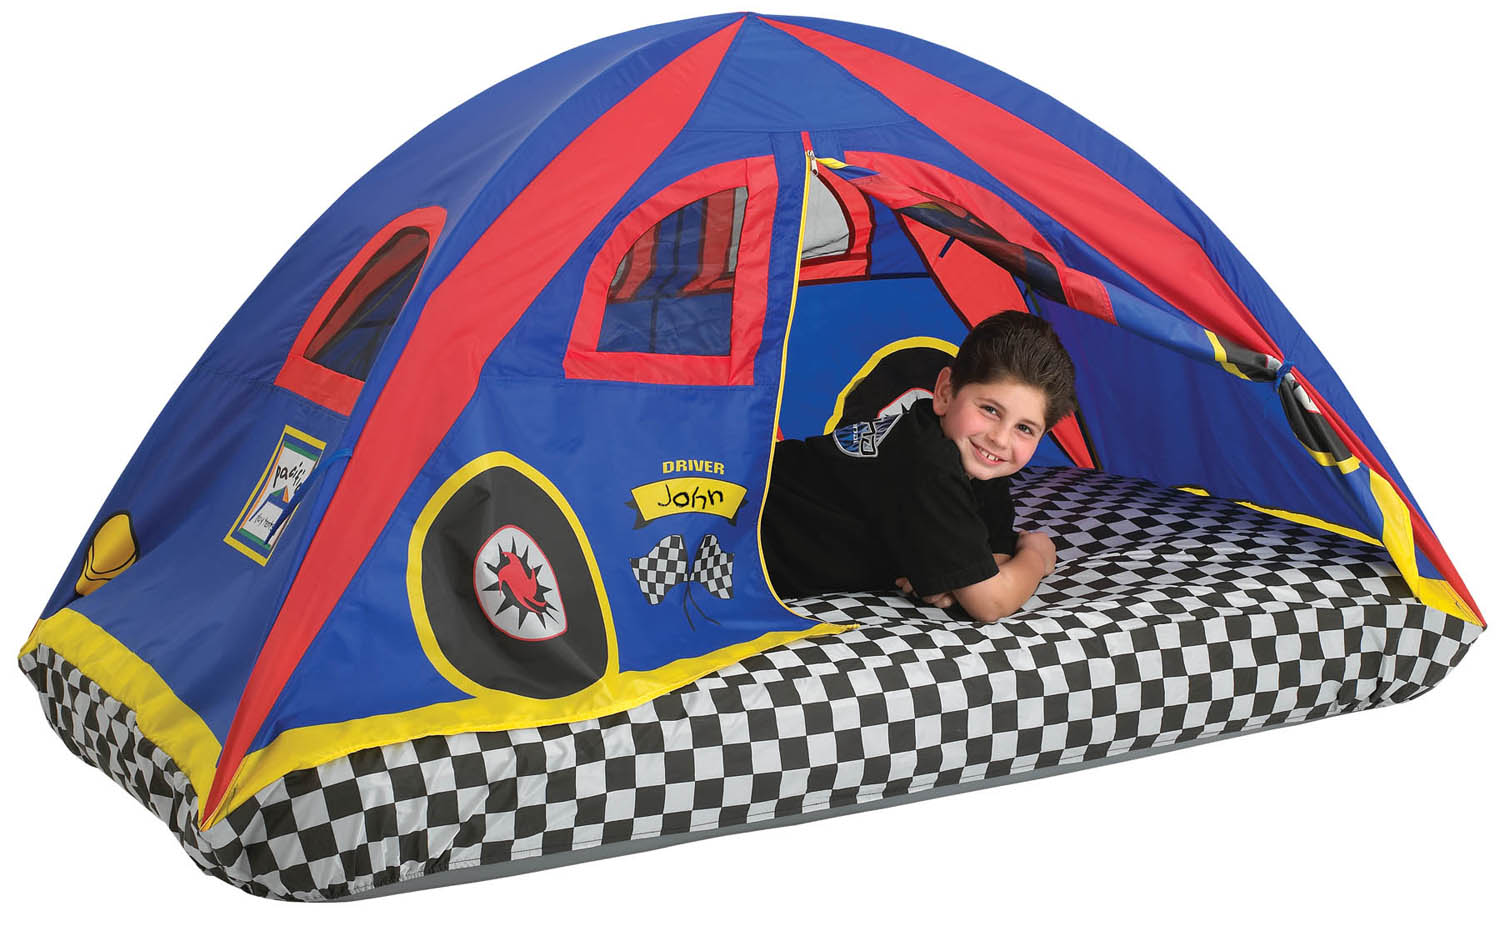 Pacific Play Tents Red Racer Bed Play Tent  sc 1 st  Play Tents and Tunnels Kids Bed Tents Play Houses Play ... & Red Racer Bed Play Tent | OutdoorFuntime.net